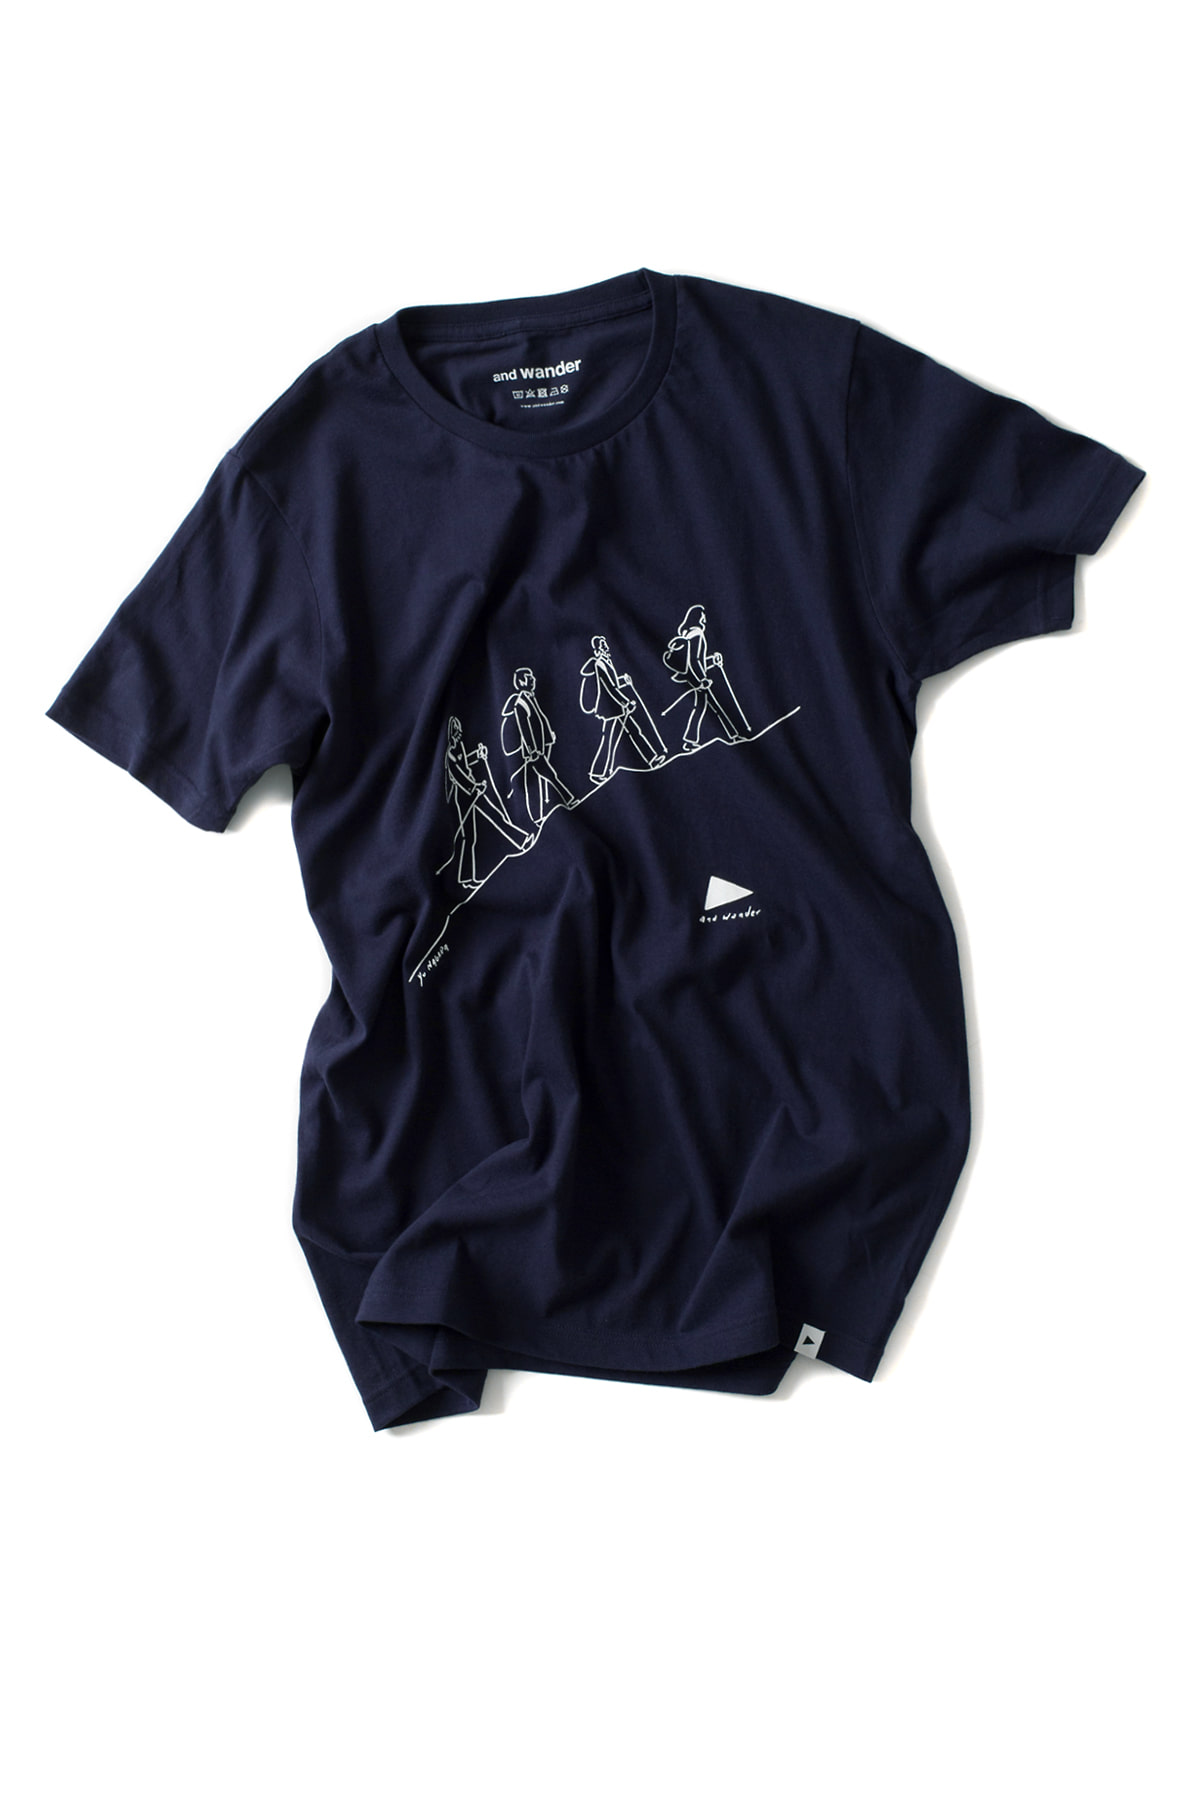 and wander : Hiker T-Shirt (Navy)